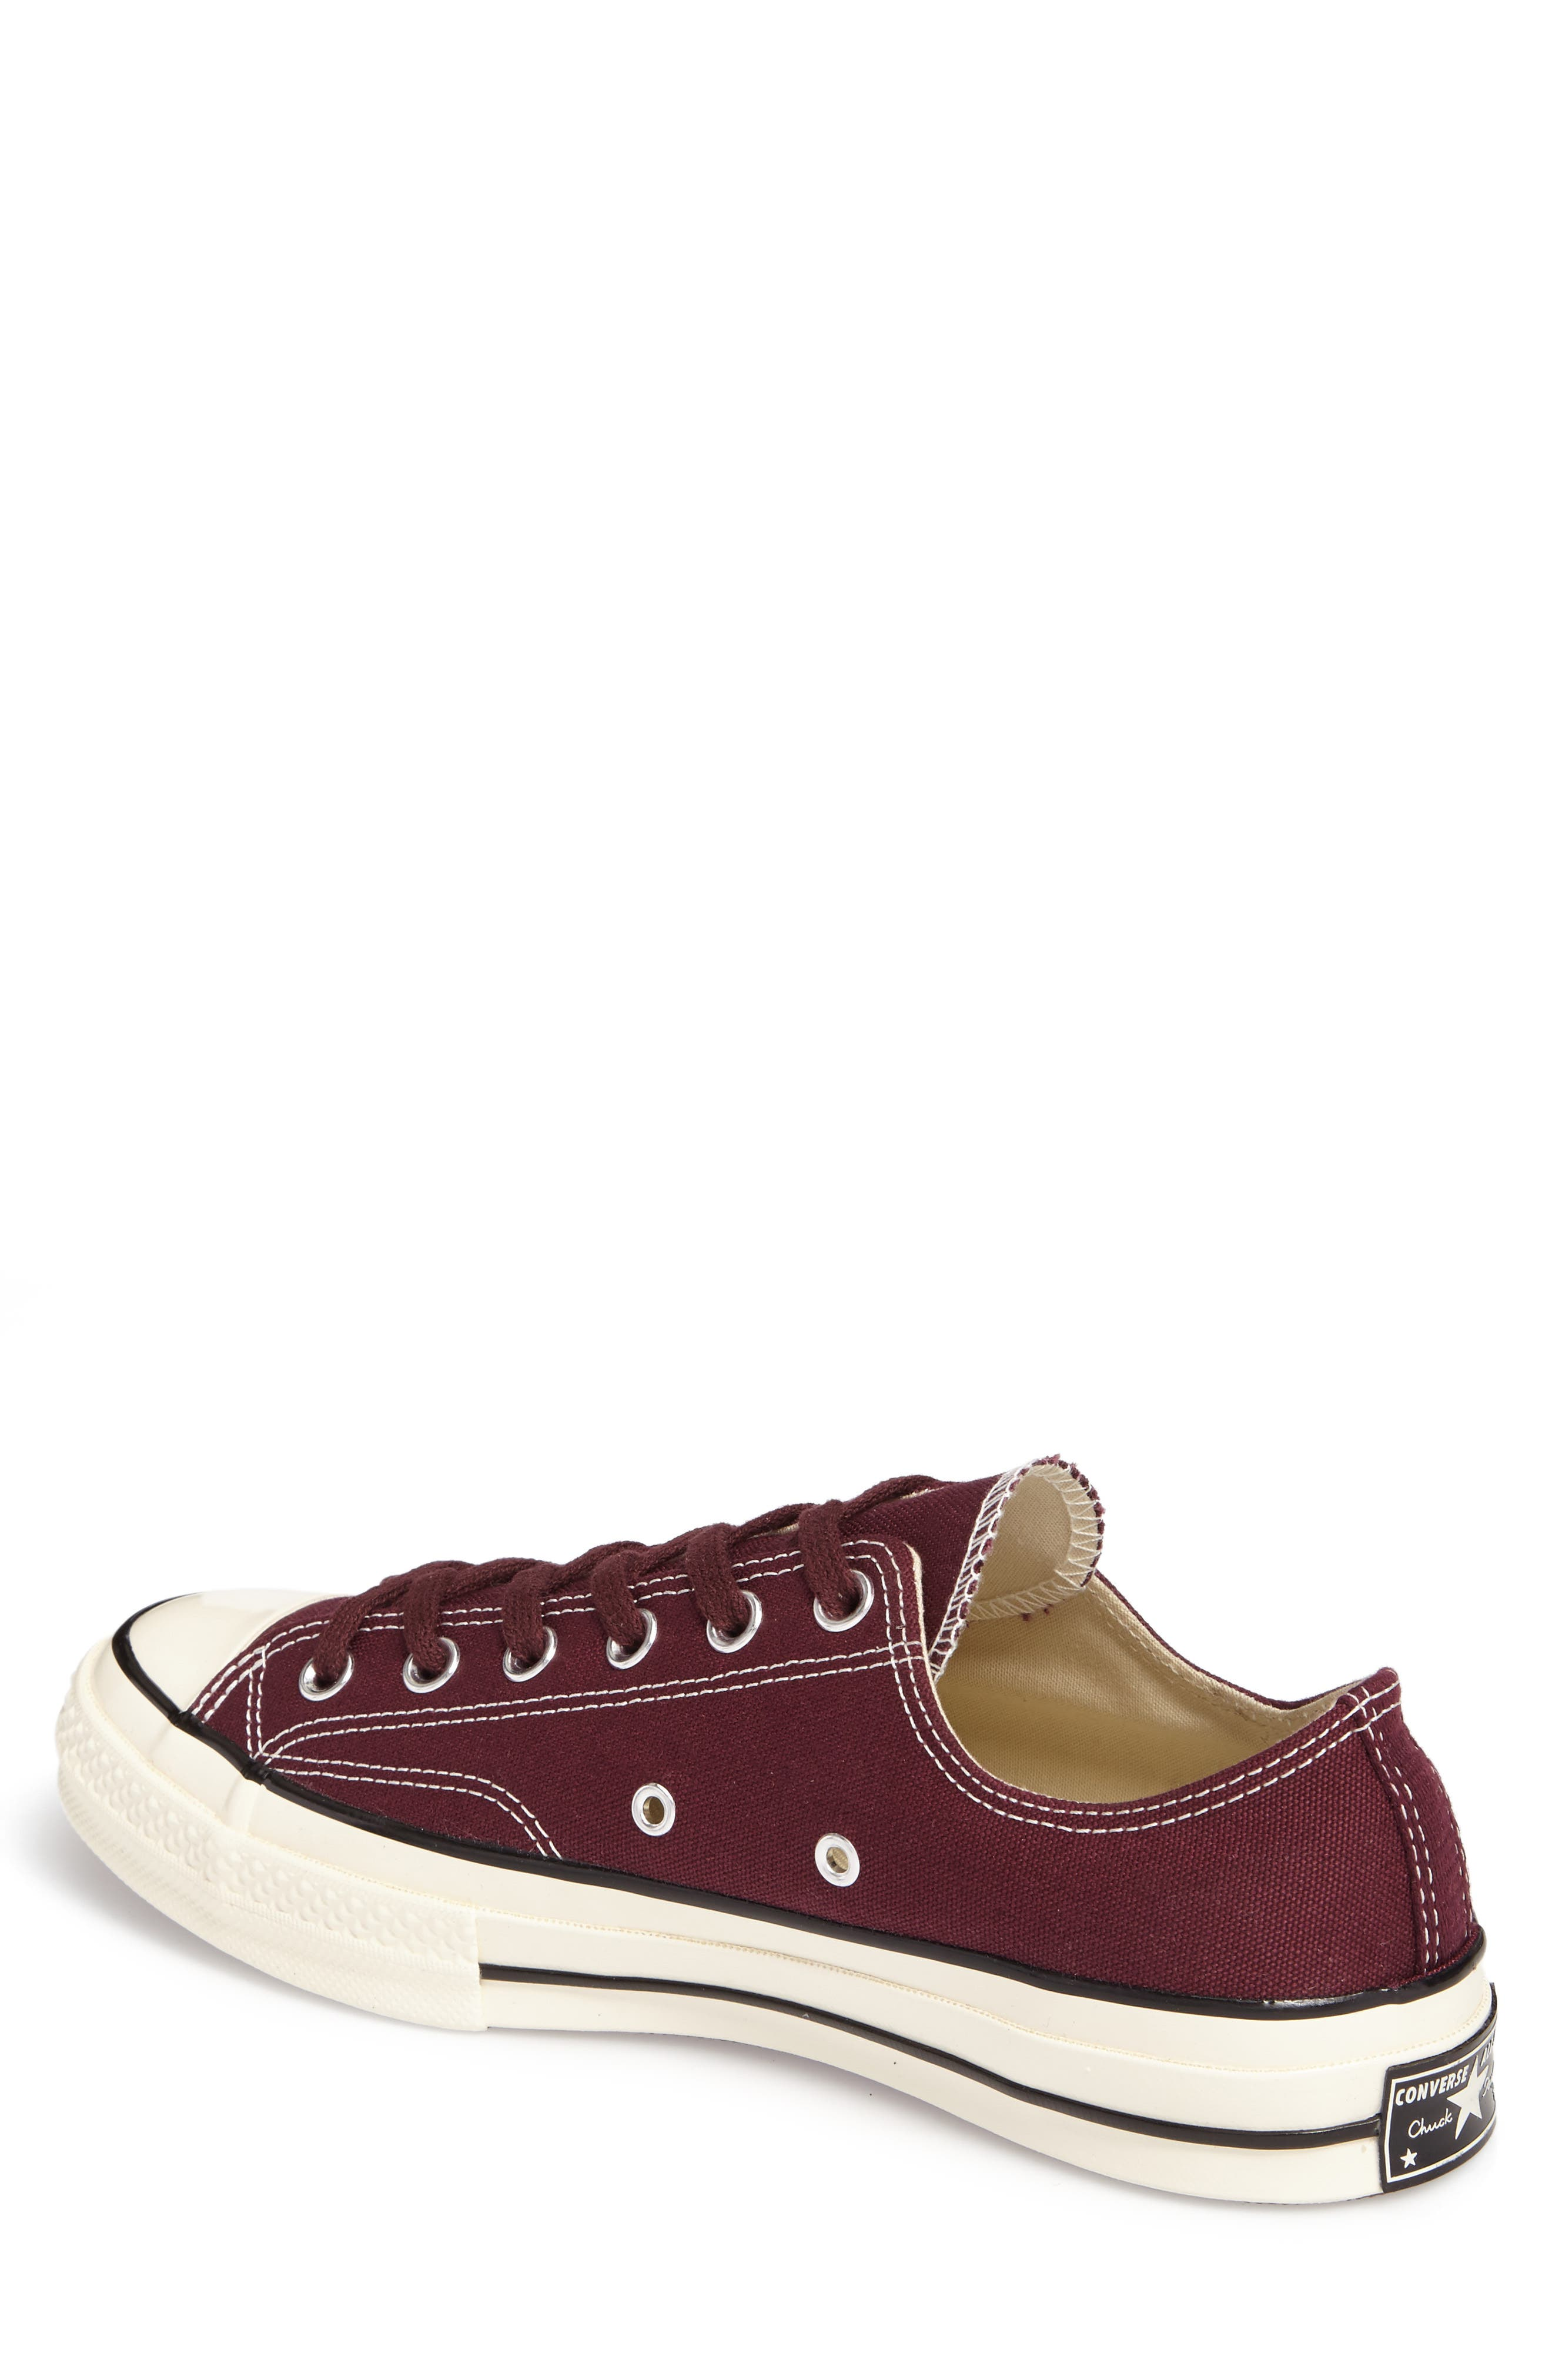 Chuck Taylor<sup>®</sup> All Star<sup>®</sup> '70 Low Sneaker,                             Alternate thumbnail 10, color,